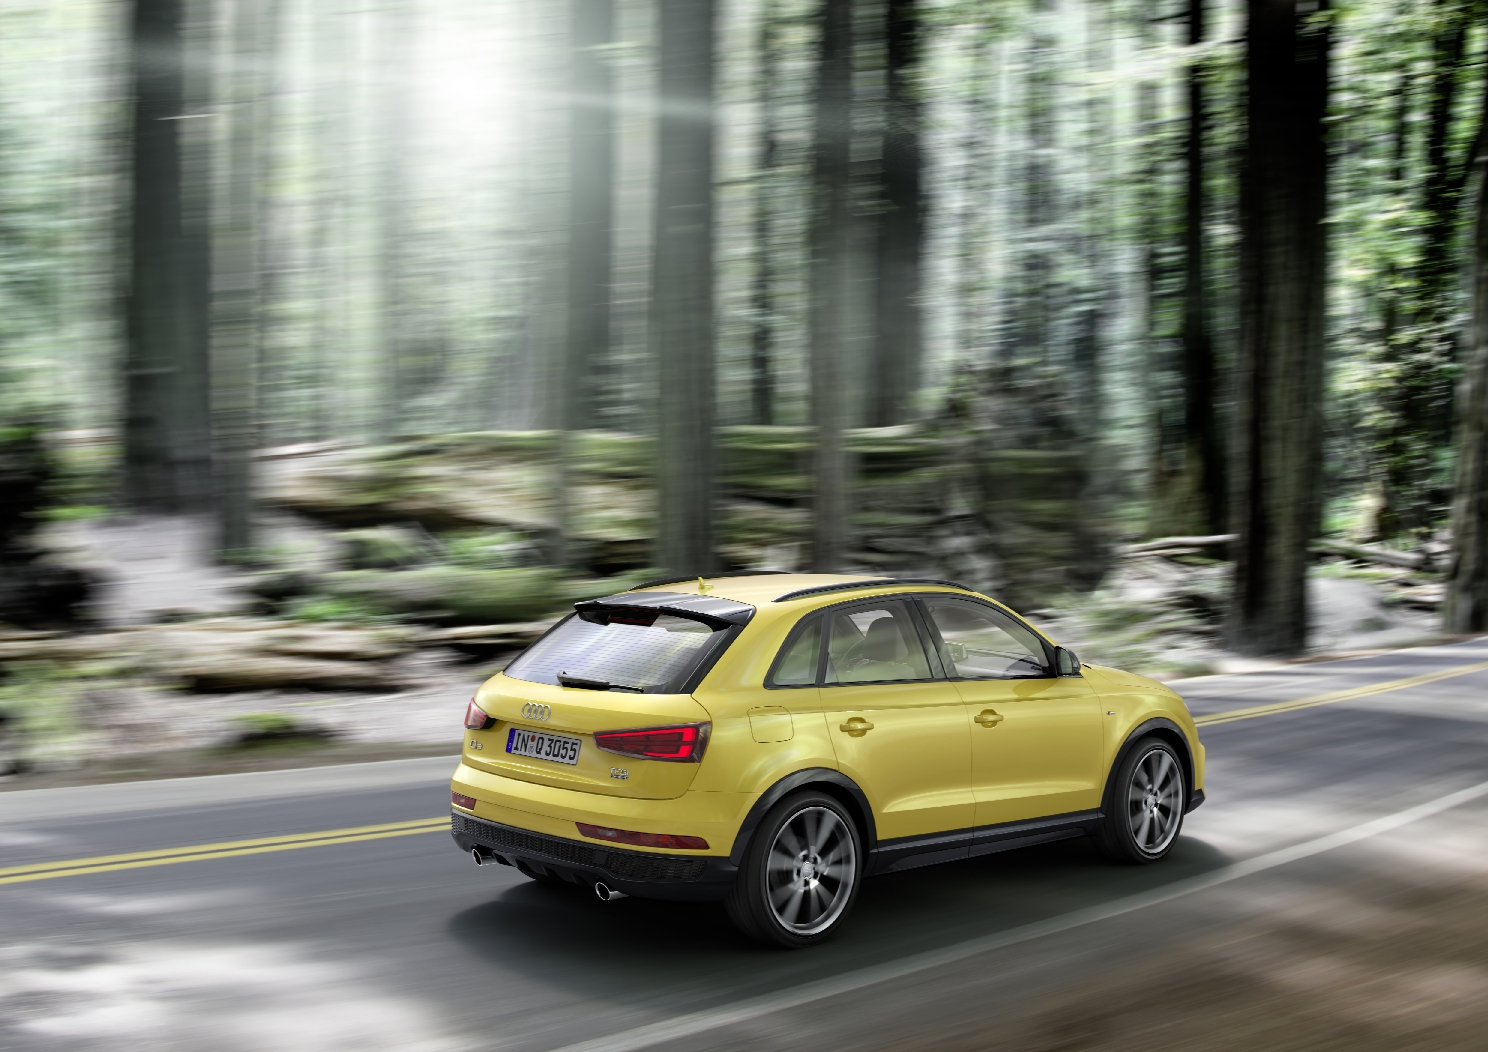 Audi Q3 2.0 TFSI Dynamic photo, Colour: Tukan Yellow